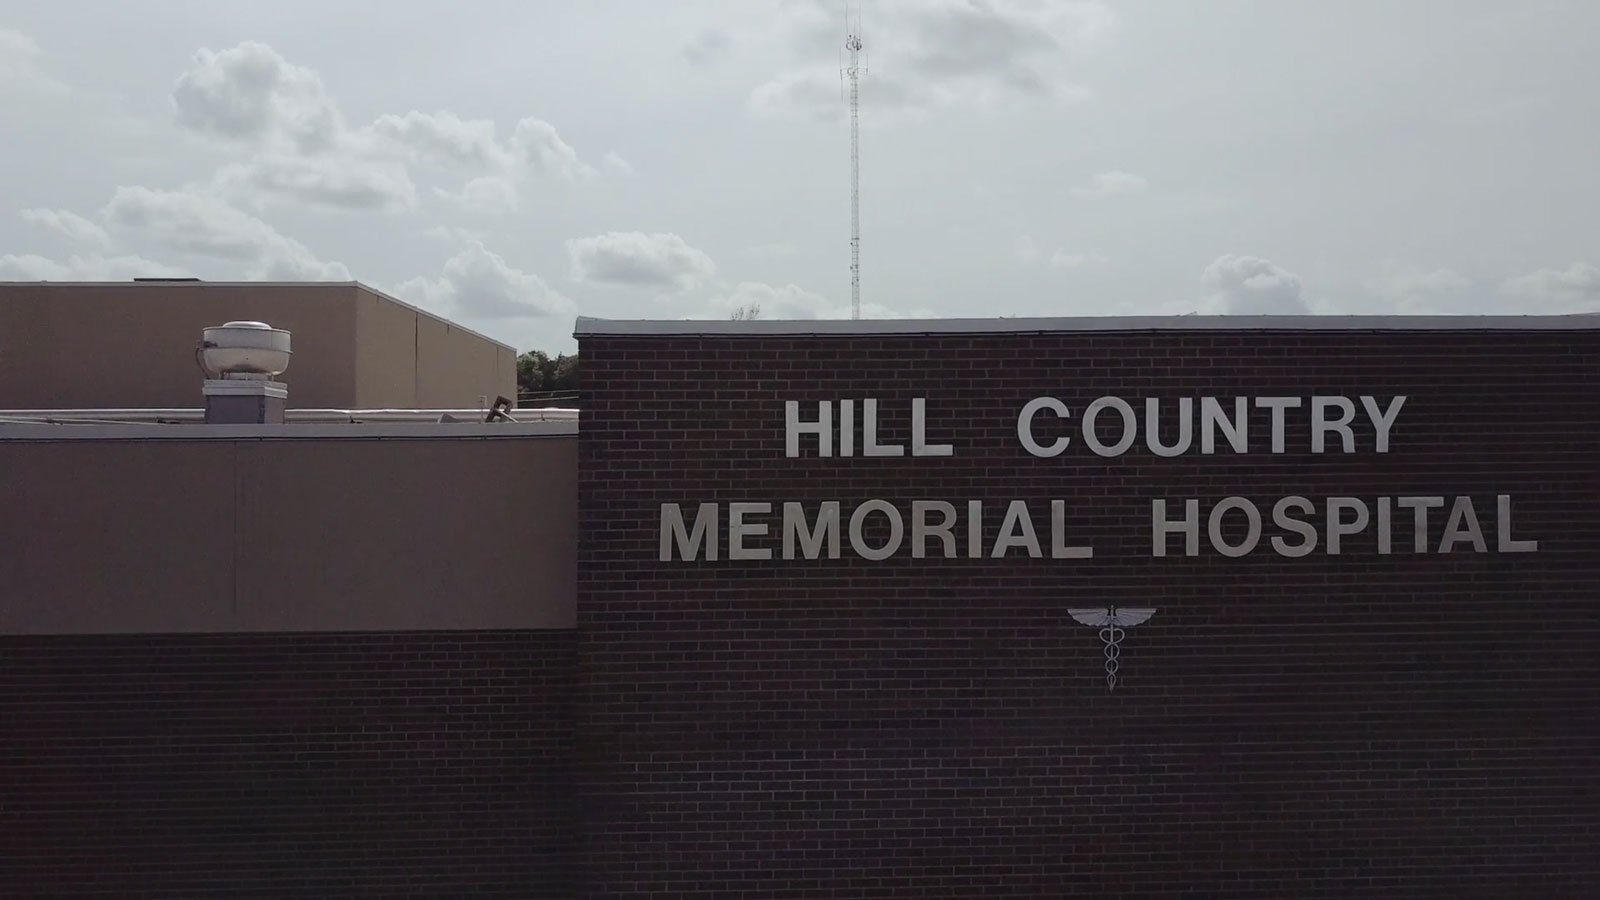 Hill Country Memorial Hospital sign on building